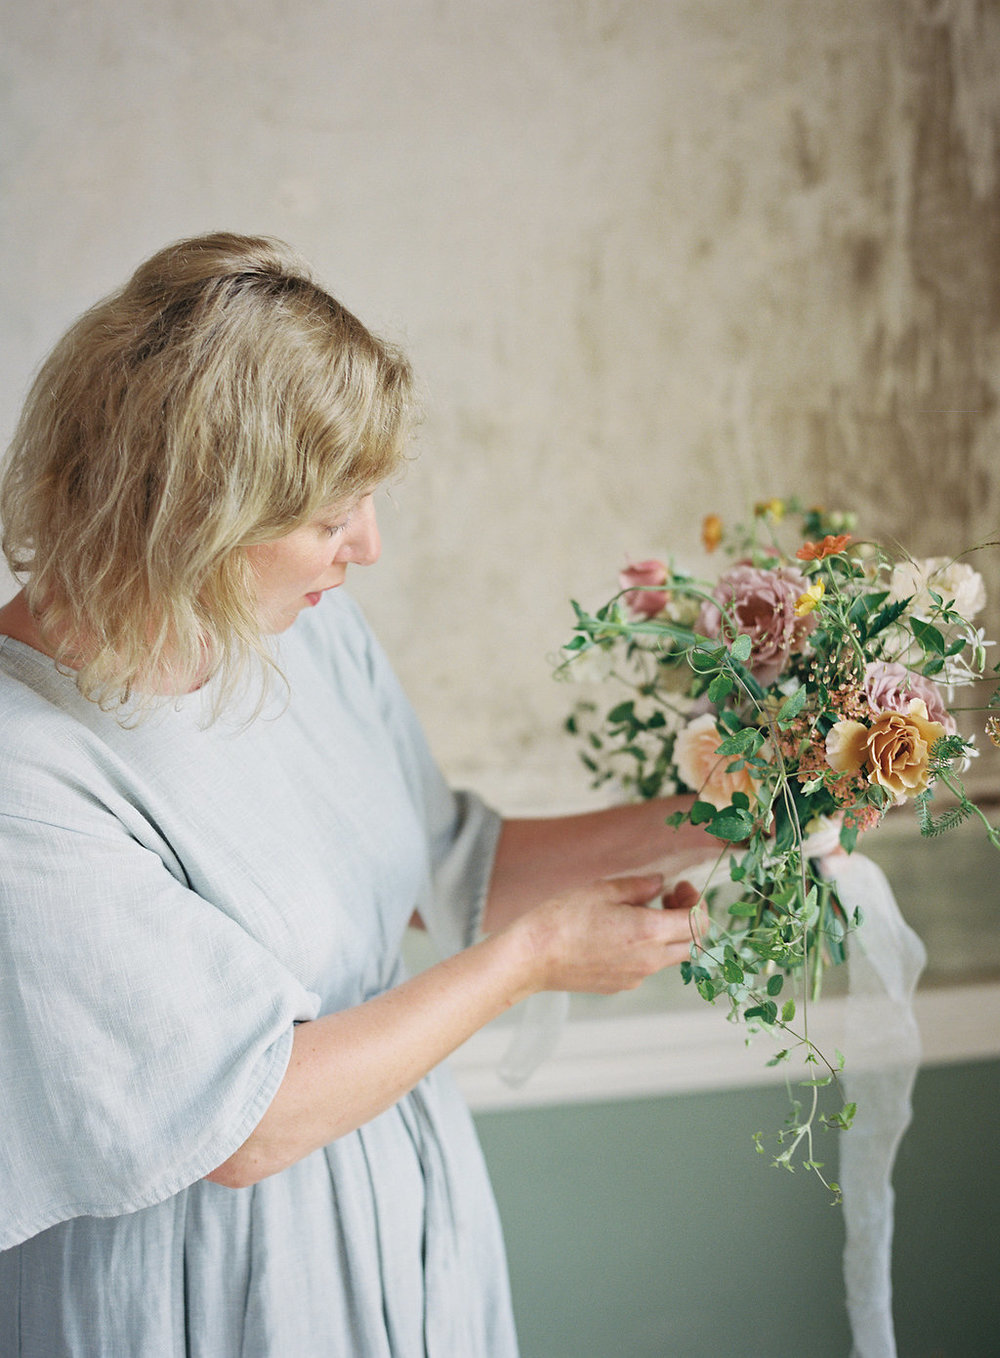 Litha Floral Workshop and Buttonhole Tutorial on cottagehill.co43.jpg